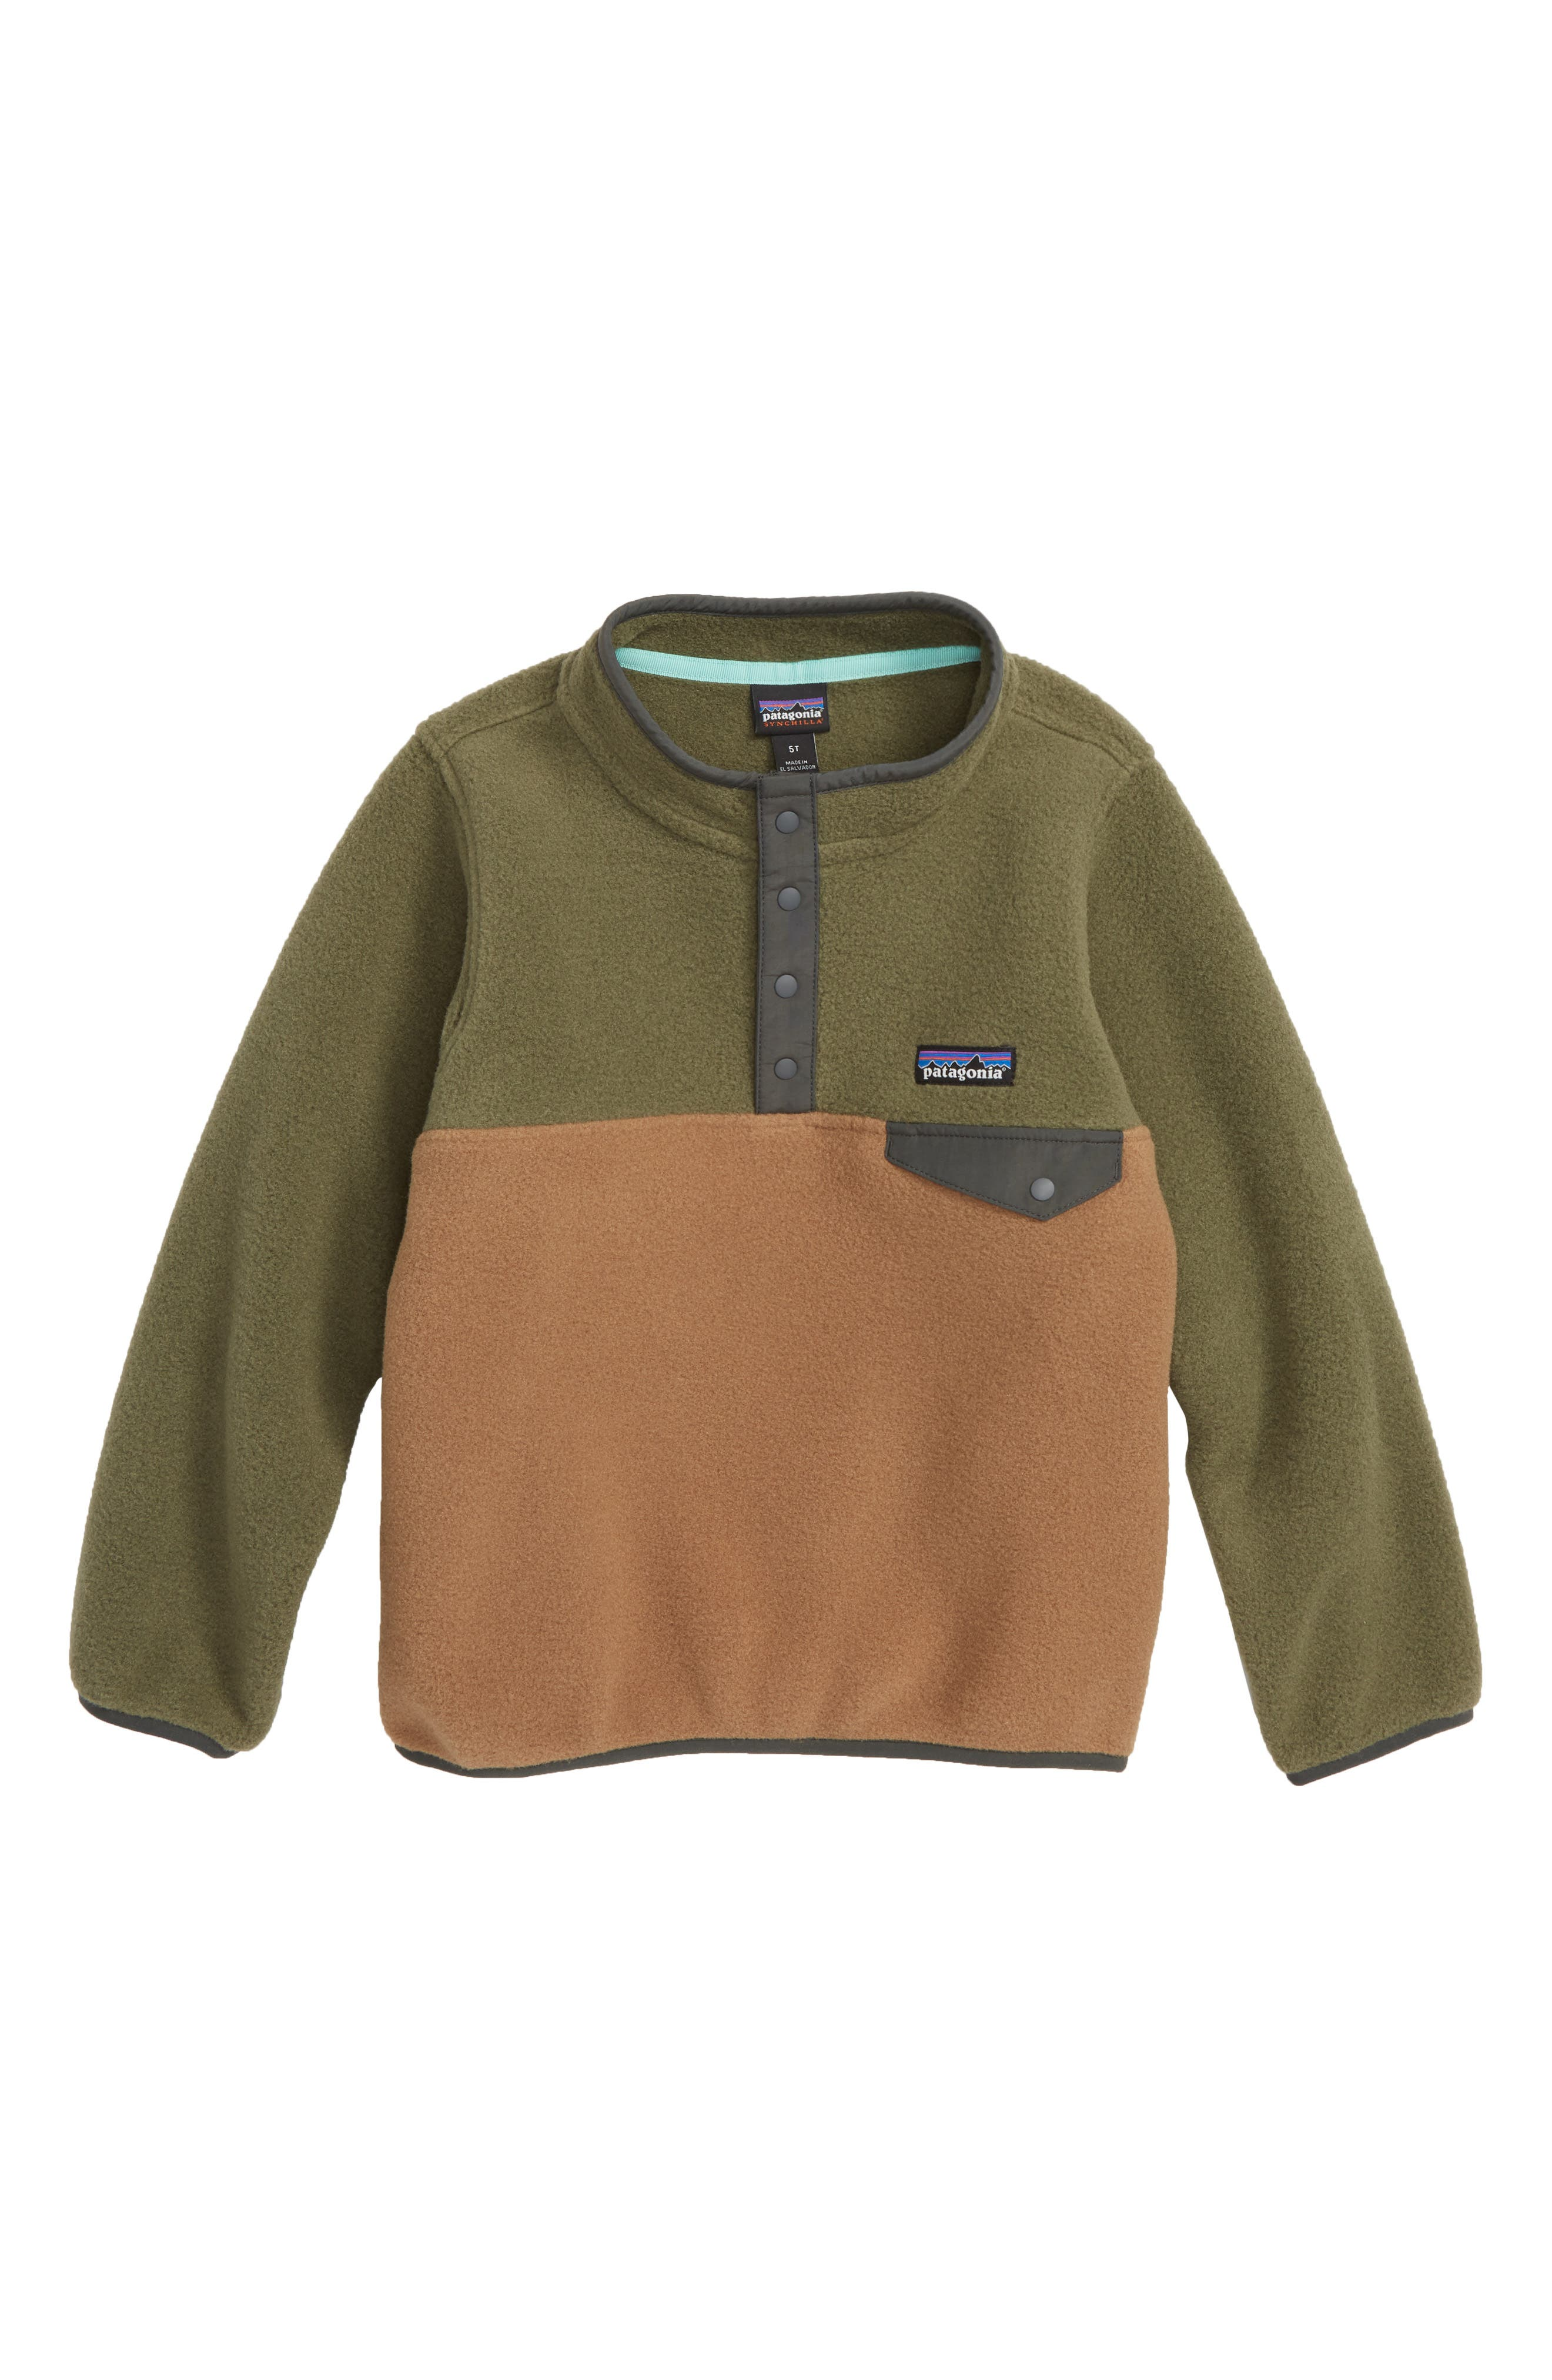 Synchilla<sup>®</sup> Snap-T<sup>®</sup> Fleece Pullover,                             Main thumbnail 1, color,                             200